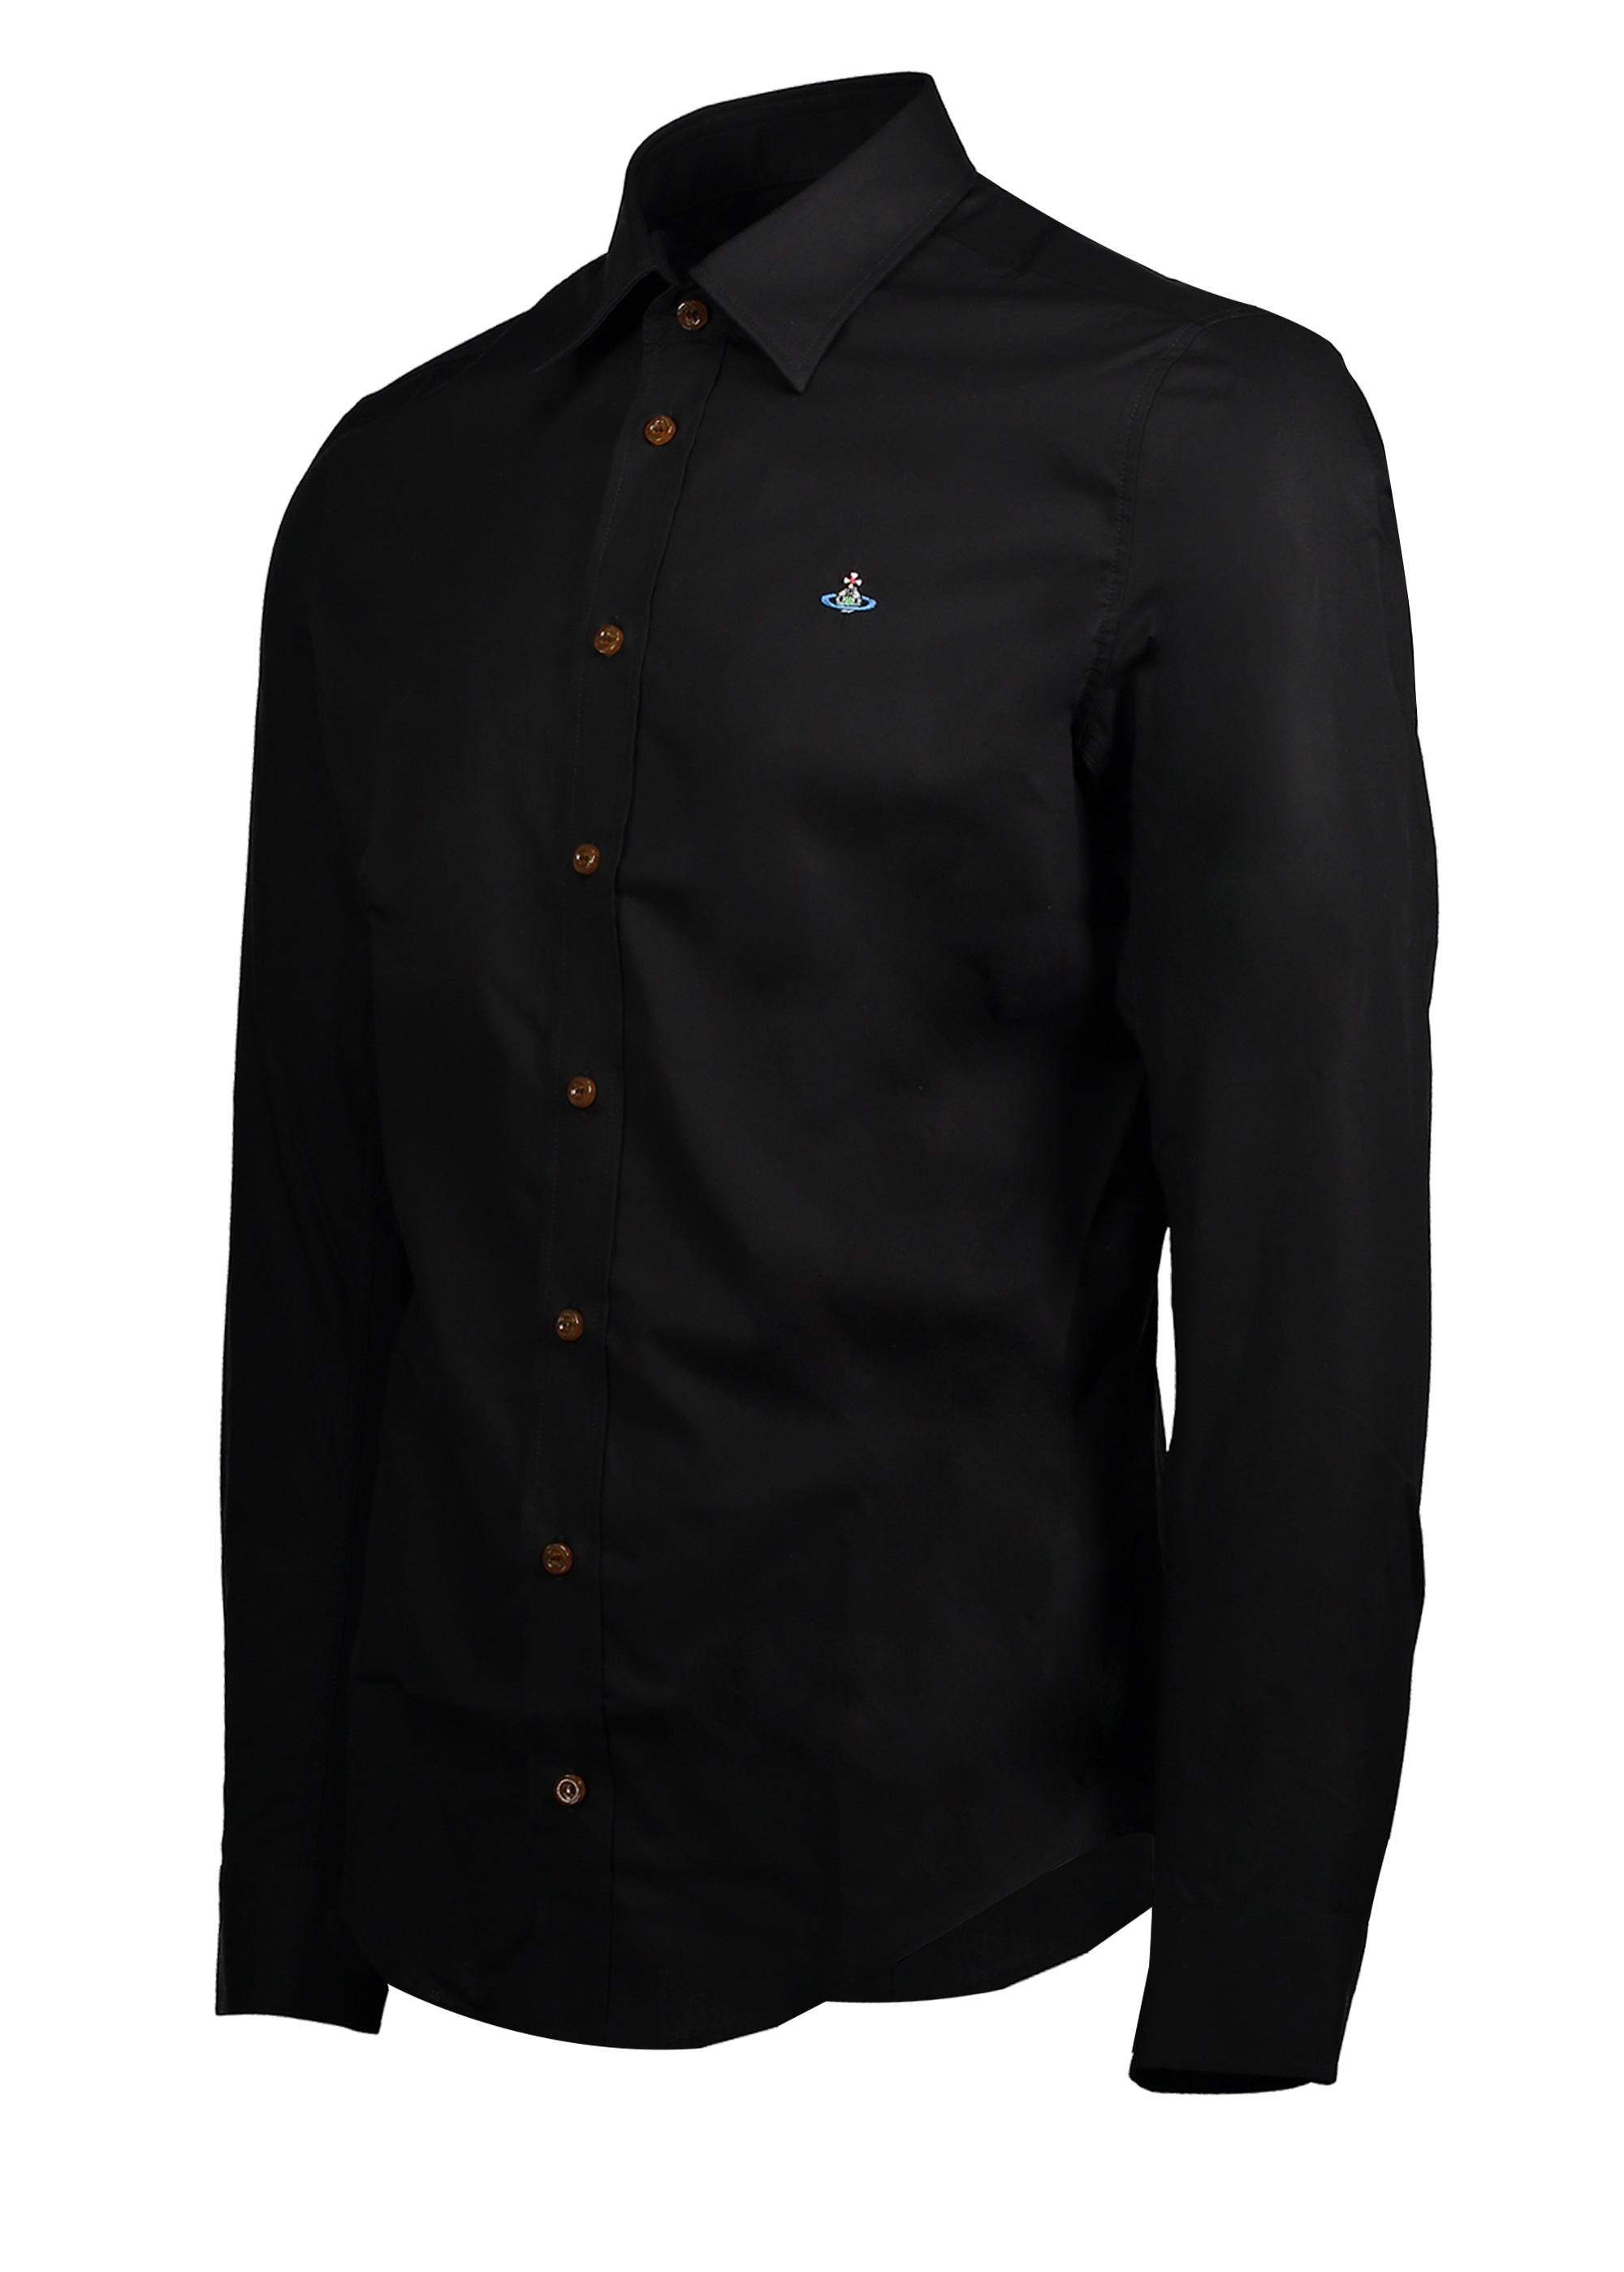 Embroidered logo shirt black from triads uk for Shirt with logo embroidered